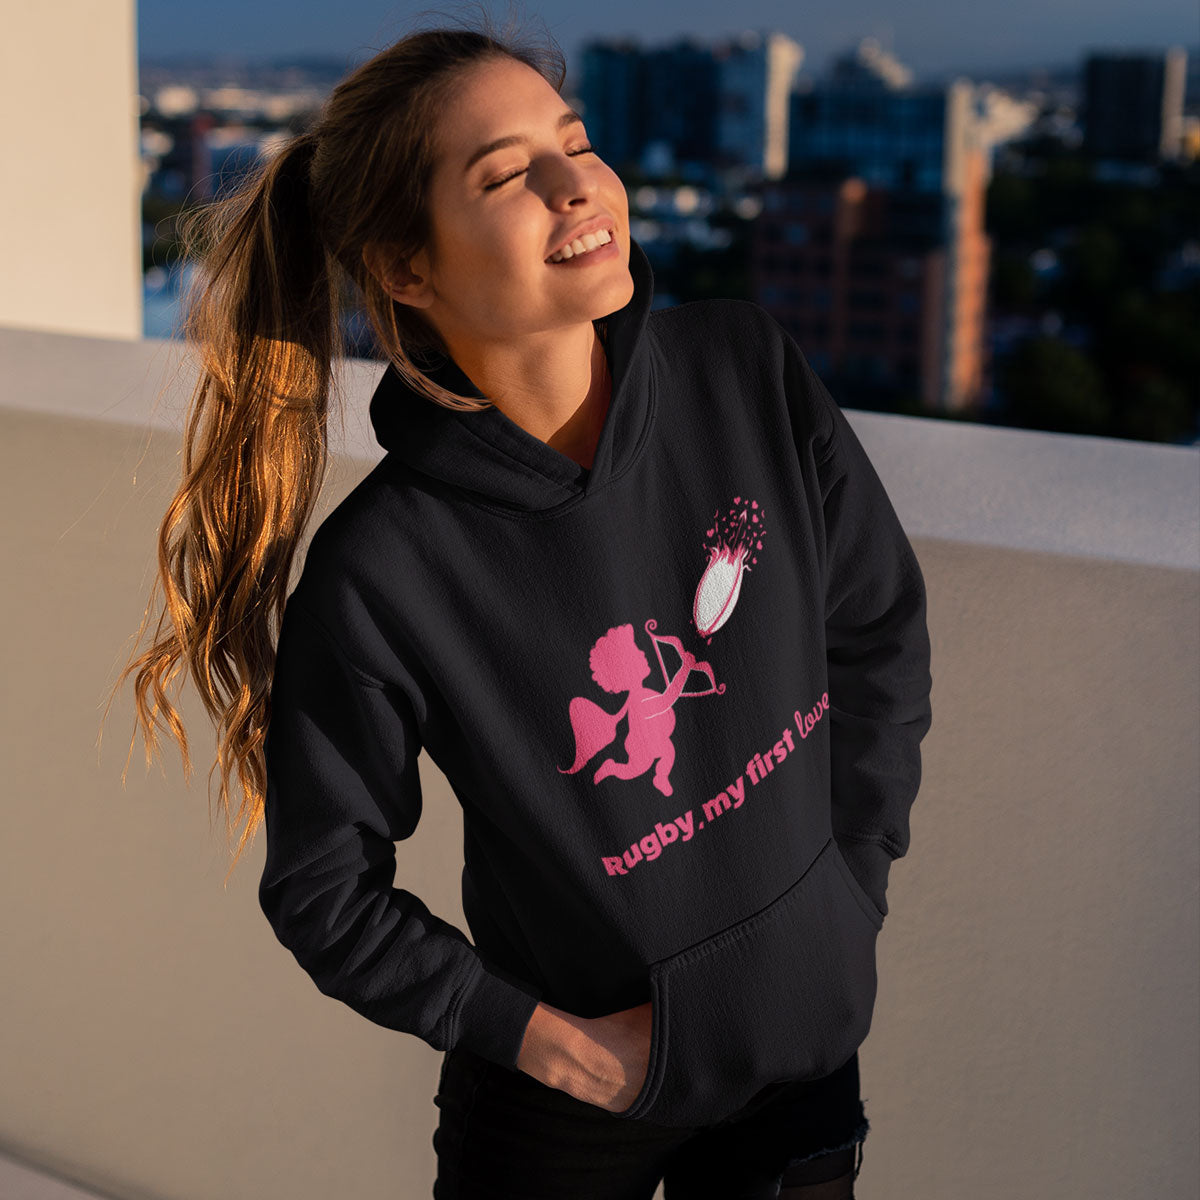 Unisex Rugby, My First Love Hoody - First XV rugbystuff.com